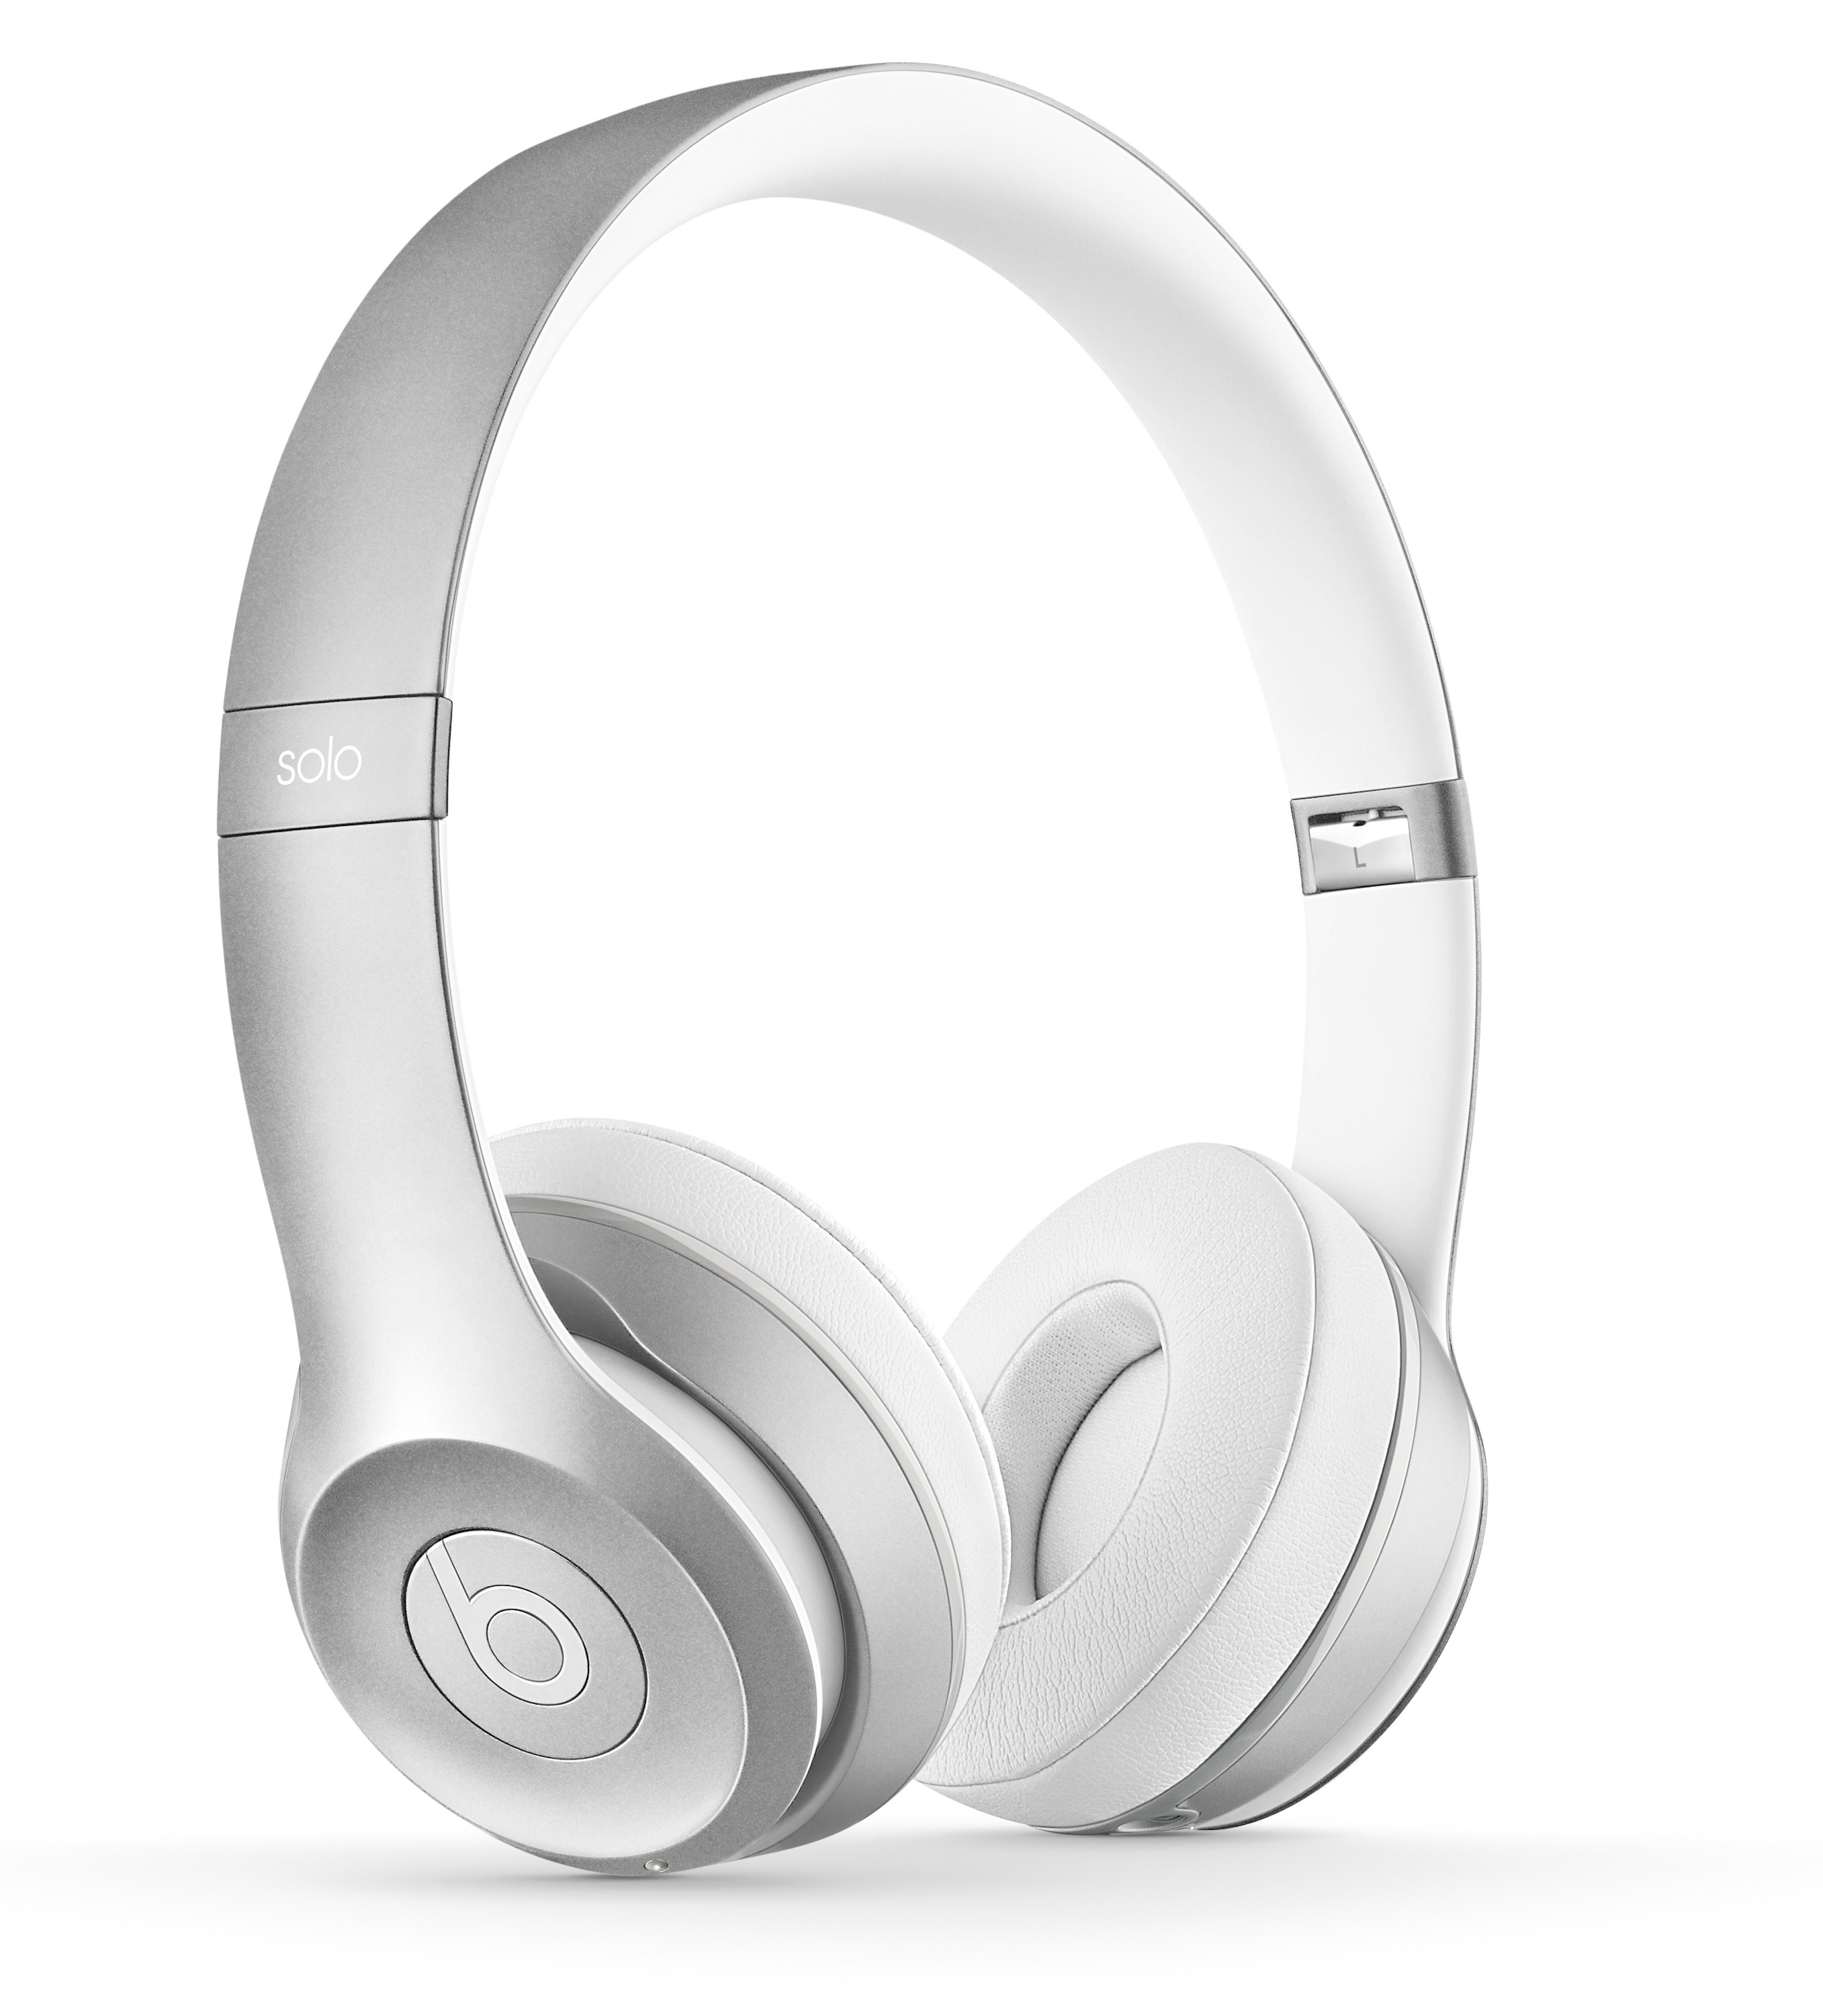 Introducing the Beats Wireless family featuring Beats Studio3 Wireless Beats X Powerbeats3 Wireless Solo3 Wireless and Pill